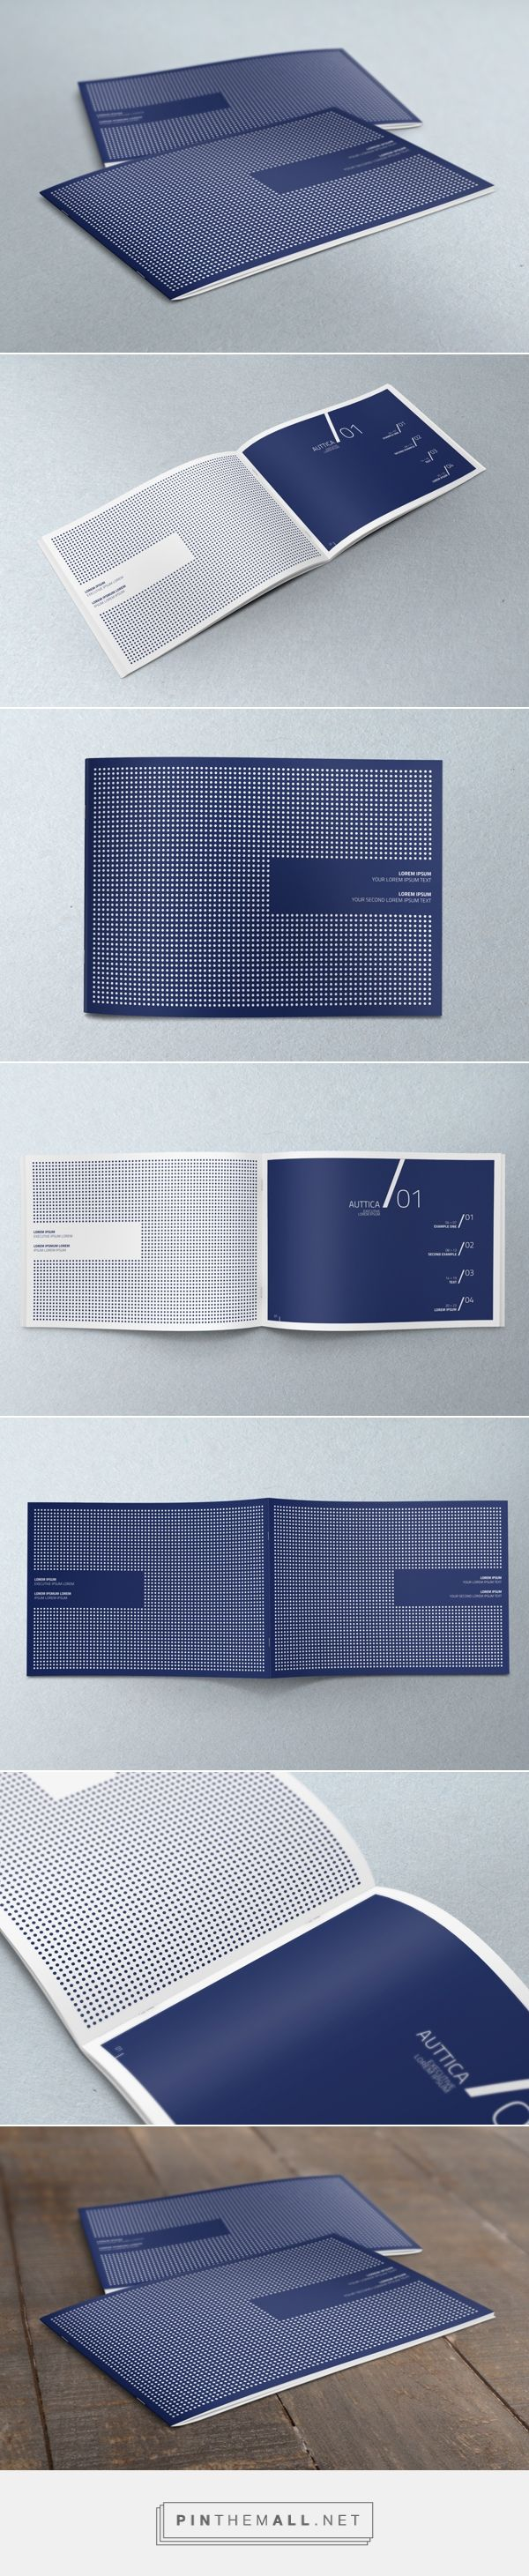 Horizontal A4 Brochure Mock-up by yogurt86 design studio